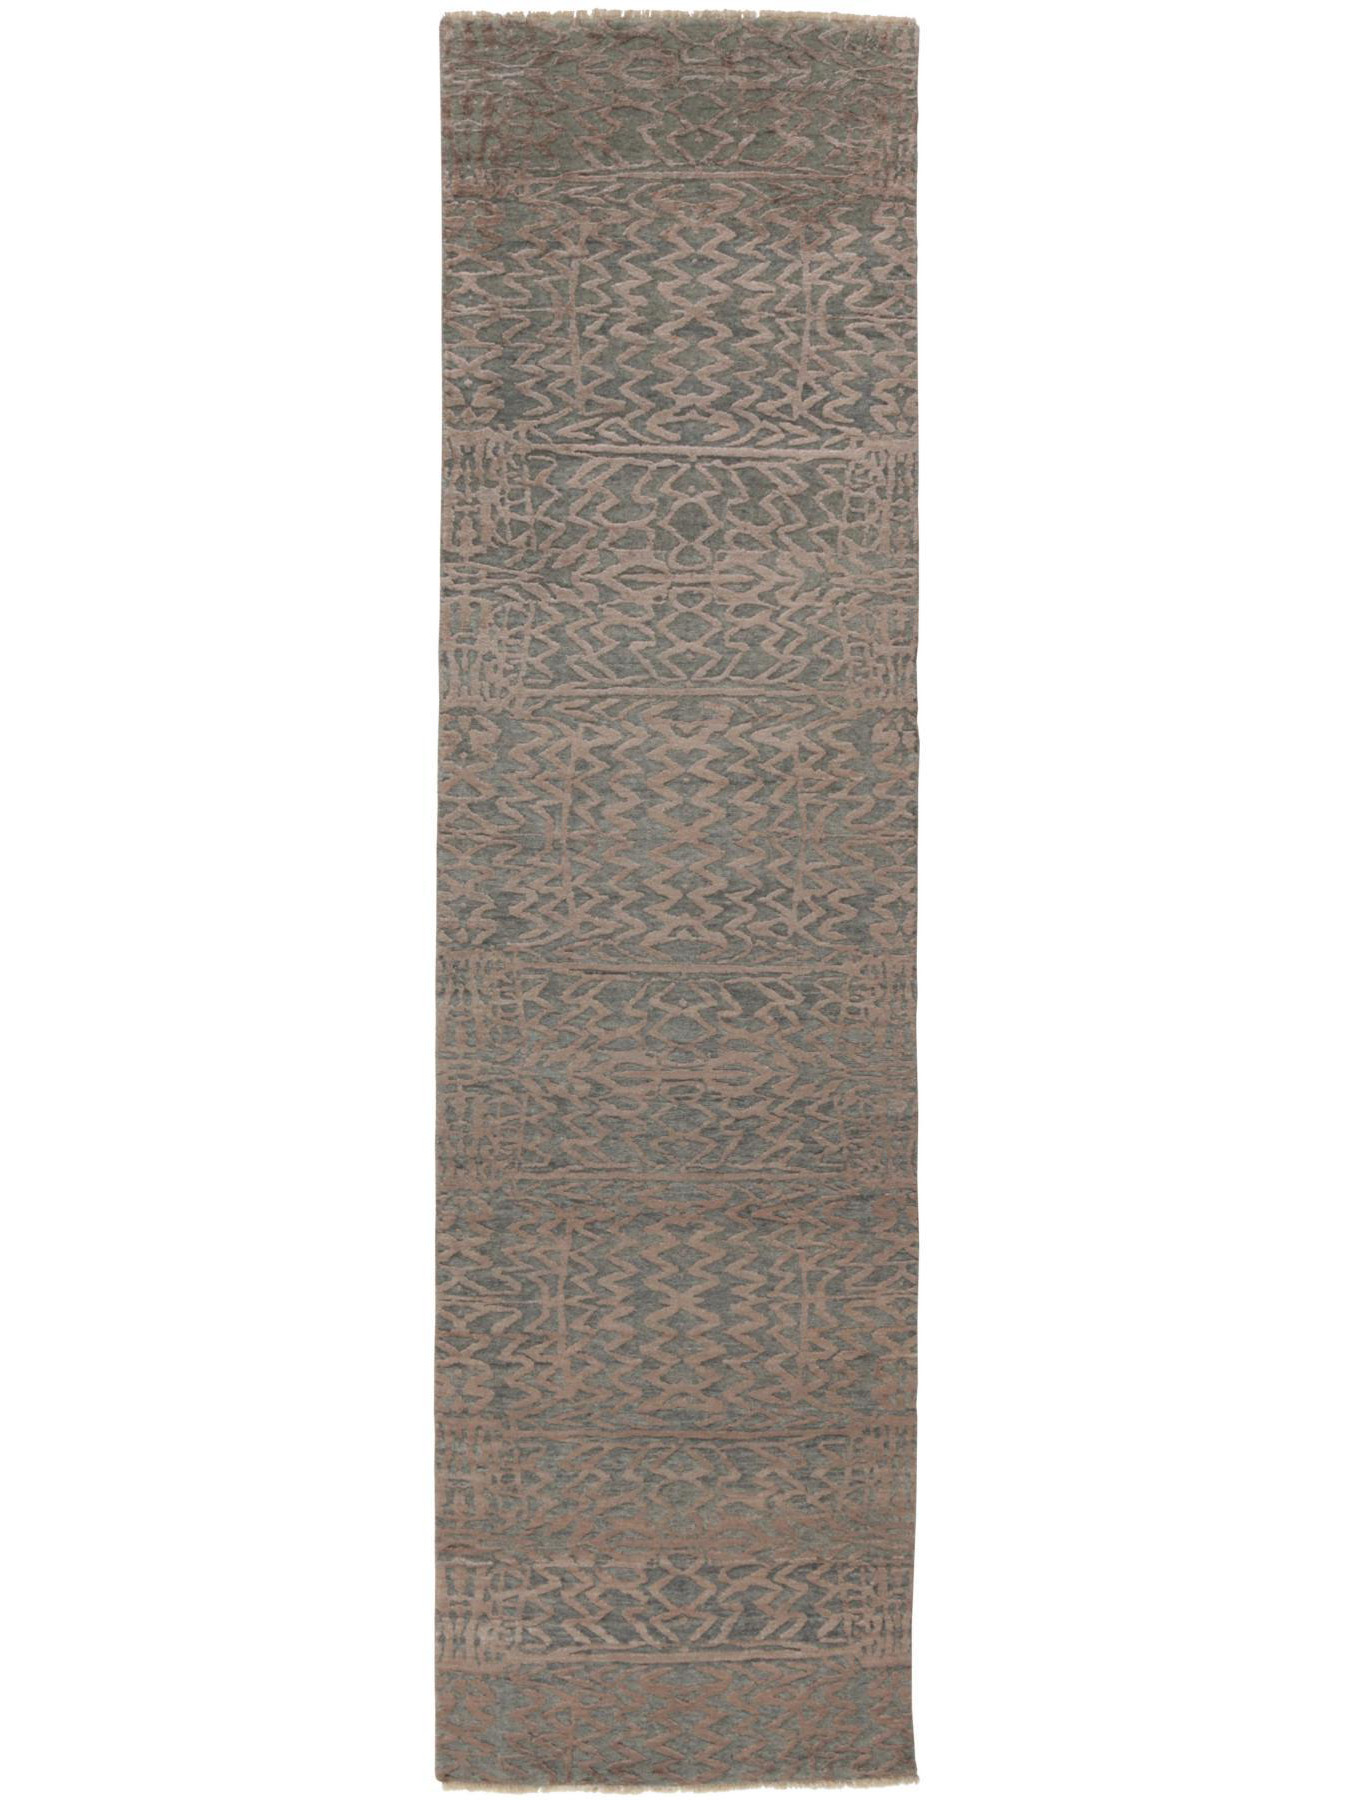 Luxury carpets - Damask-AL-417 F-33/B-7